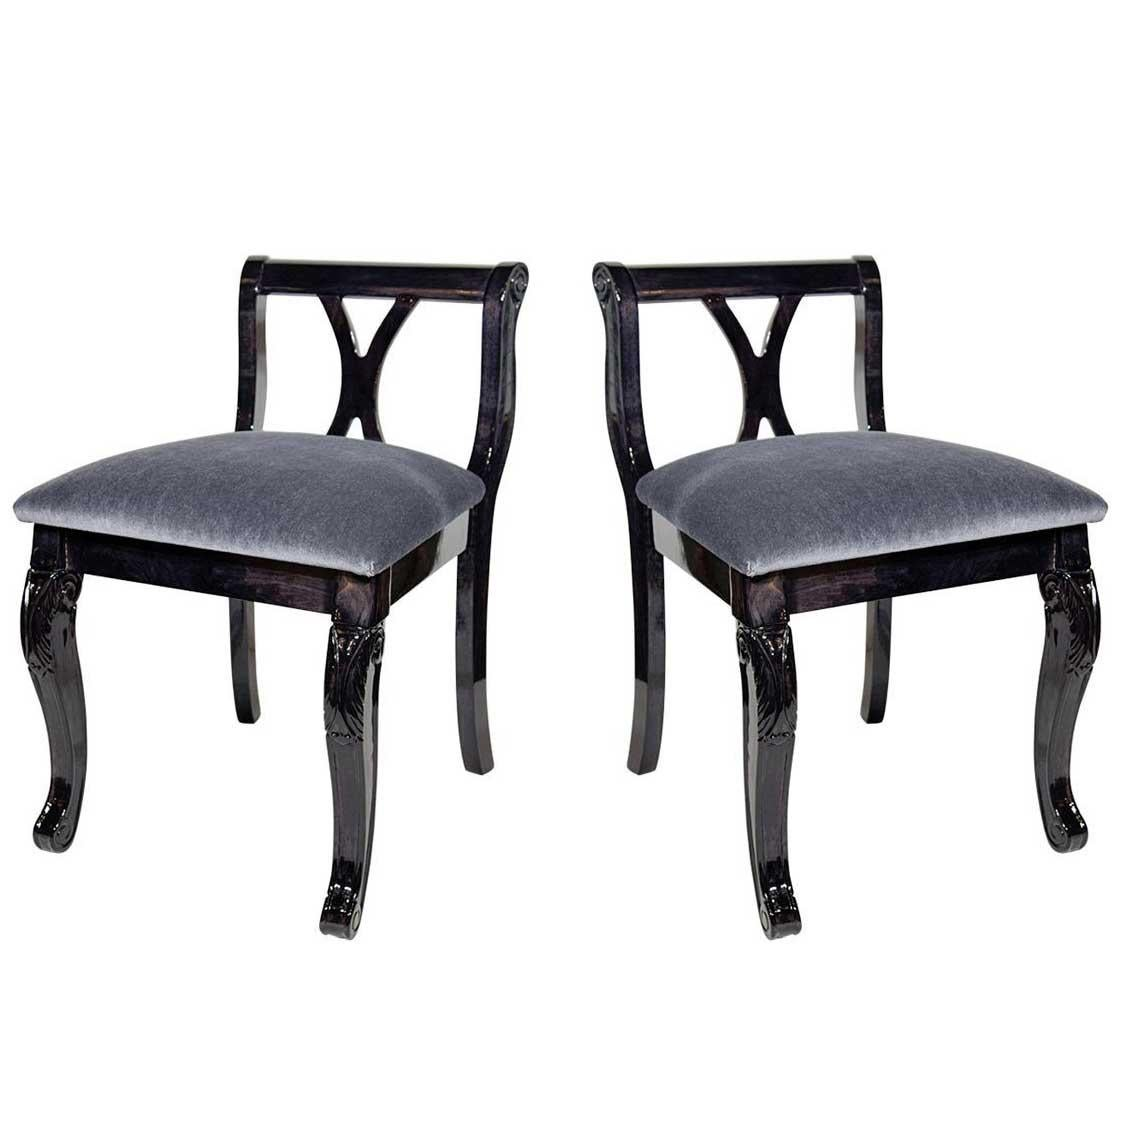 Vanity Chairs Pair Of Art Deco Vanity Chairs In Mohair And Ebonized Walnut